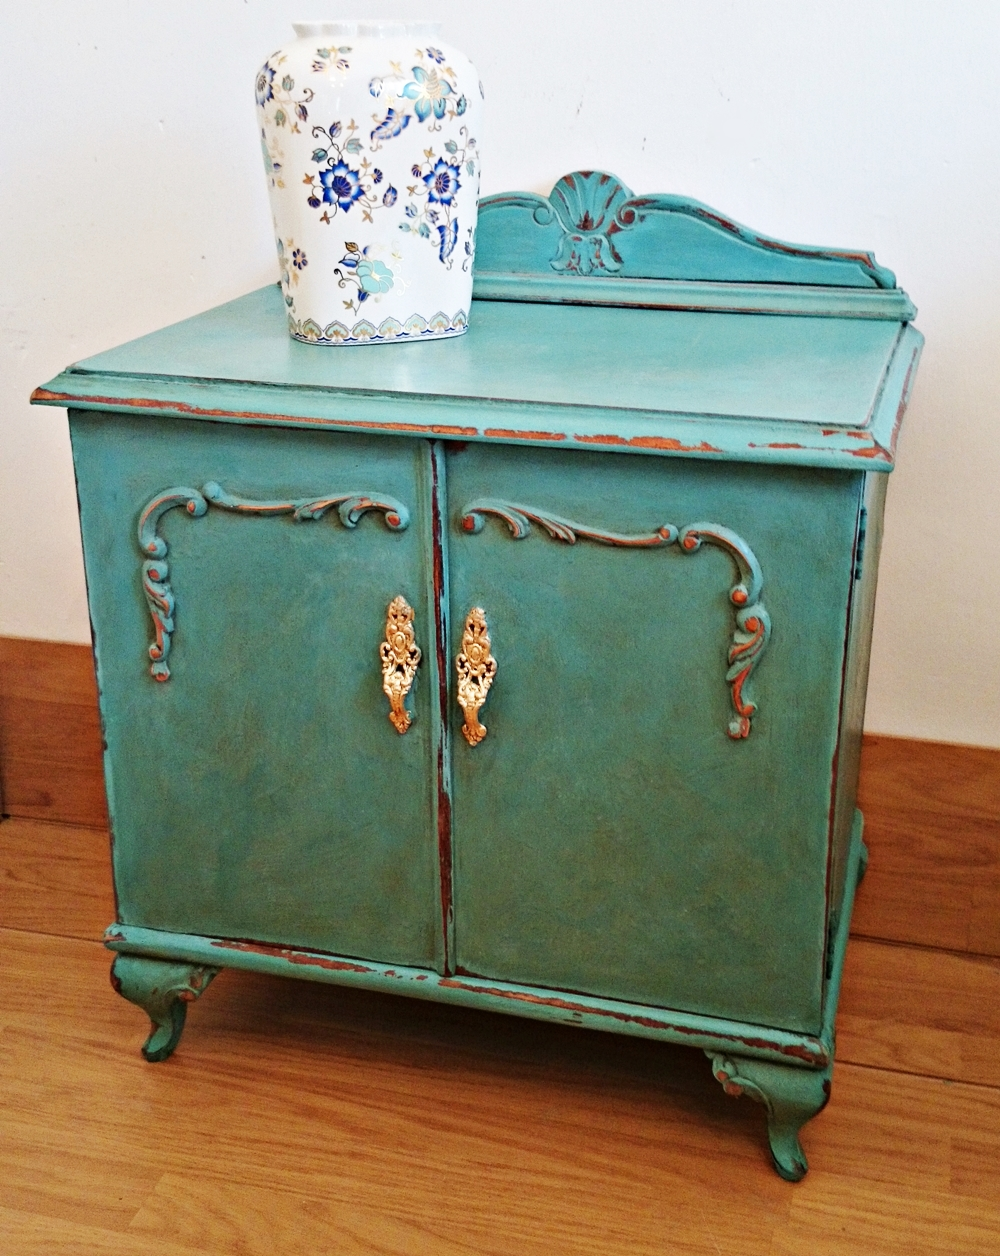 Mesita de noche vintage turquesa turquoise side table for Mesita noche vintage